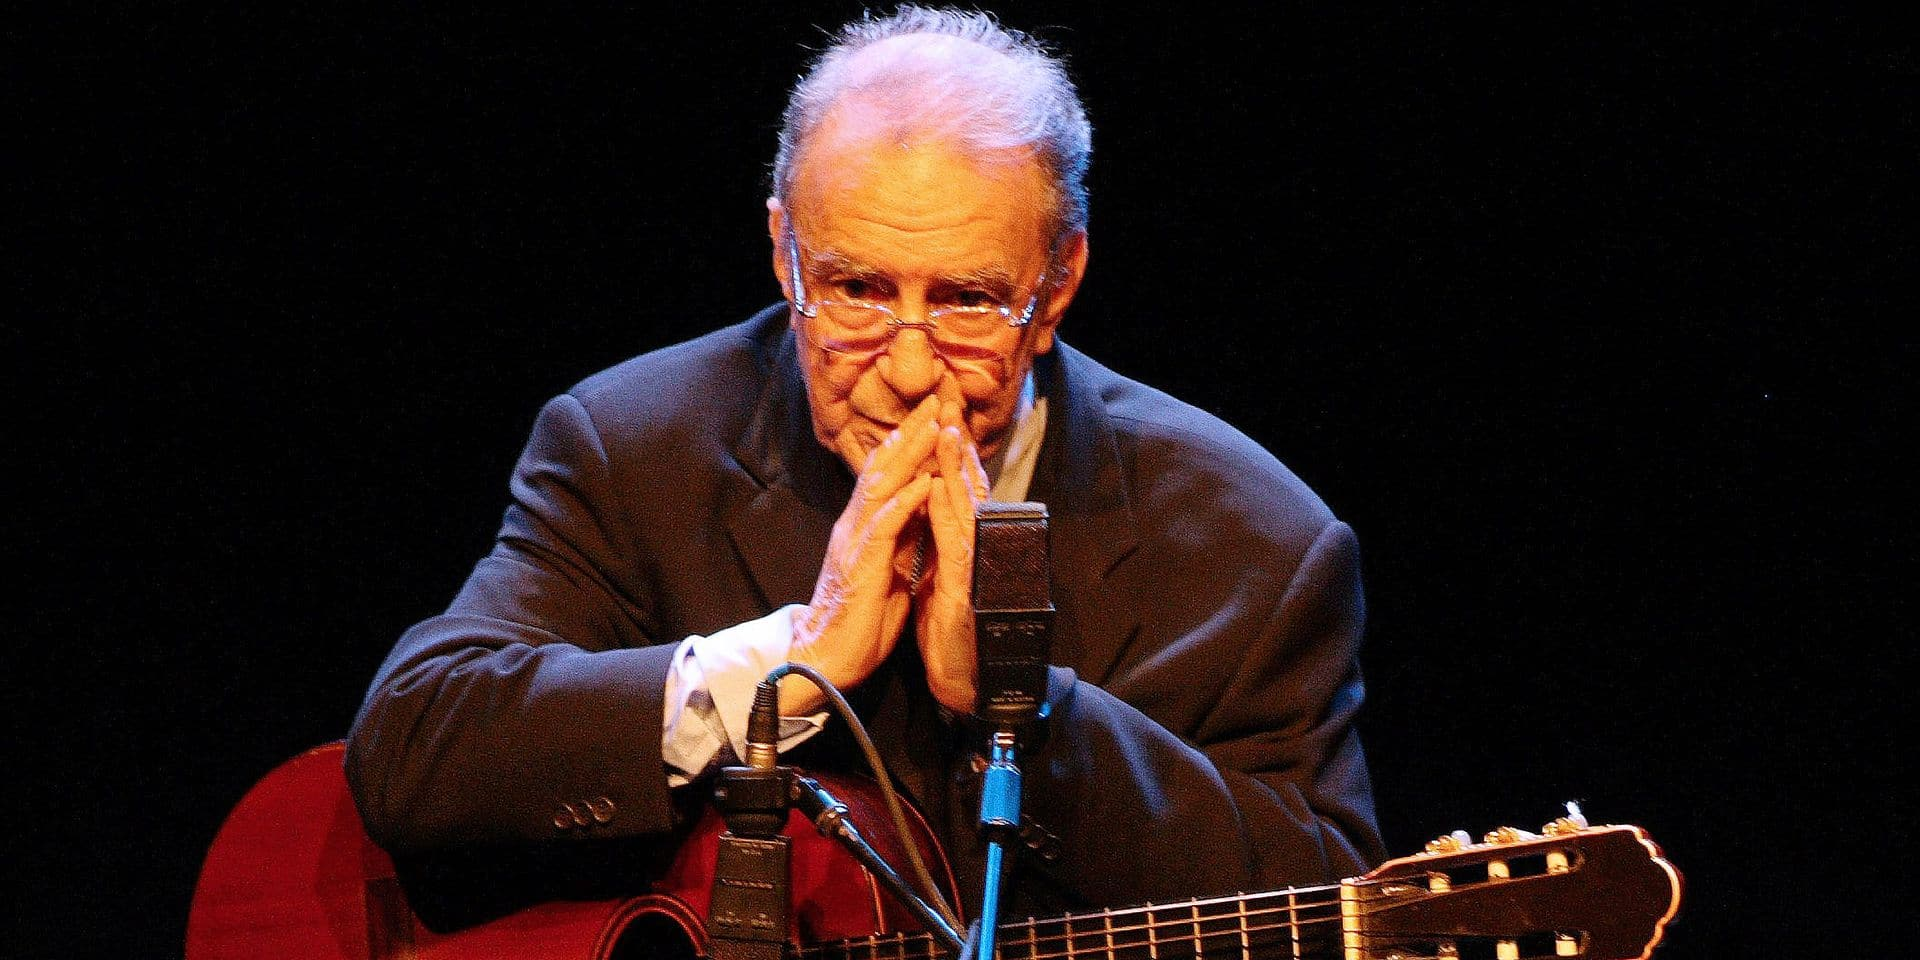 (FILES) In this file photo taken on August 14, 2008, Brazilian singer and composer Joao Gilberto, 77, one of the trio of Brazilian artists who brought Bossa Nova to the world in 1958, performs during a concert in Sao Paulo, Brazil. - Joao Gilberto, the legendary Brazilian musician and songwriter who was a pioneer of the lilting, melodious music known as bossa nova, has died, his son Joao Marcelo announced Saturday on Facebook. He was 88. (Photo by Marco HERMES / AFP)